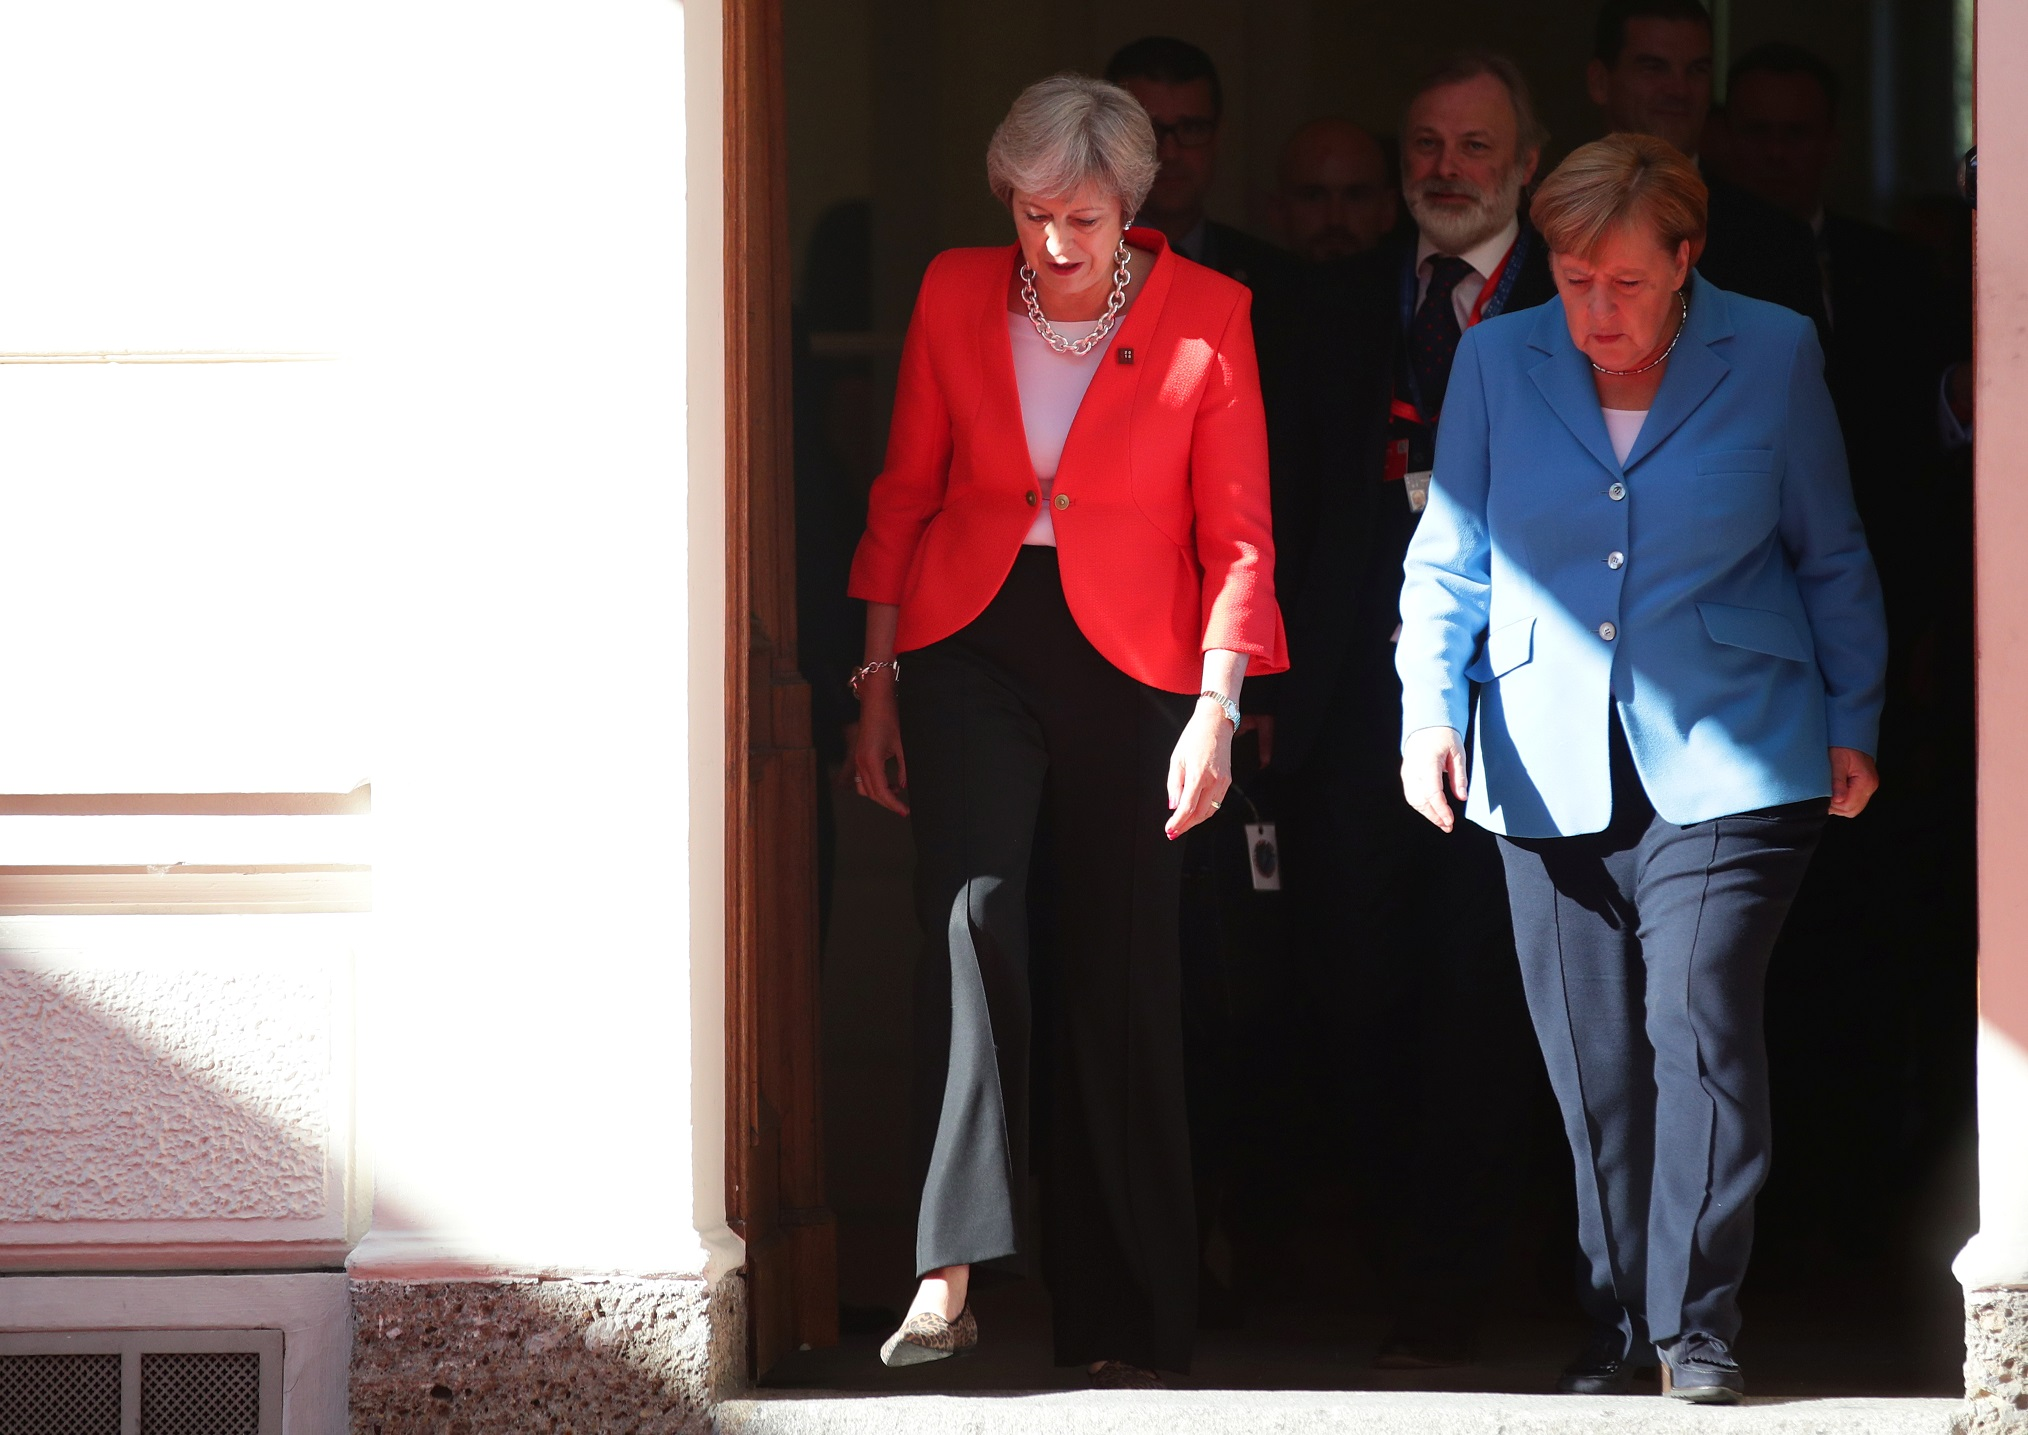 Britain must talk further about how to leave EU - Merkel